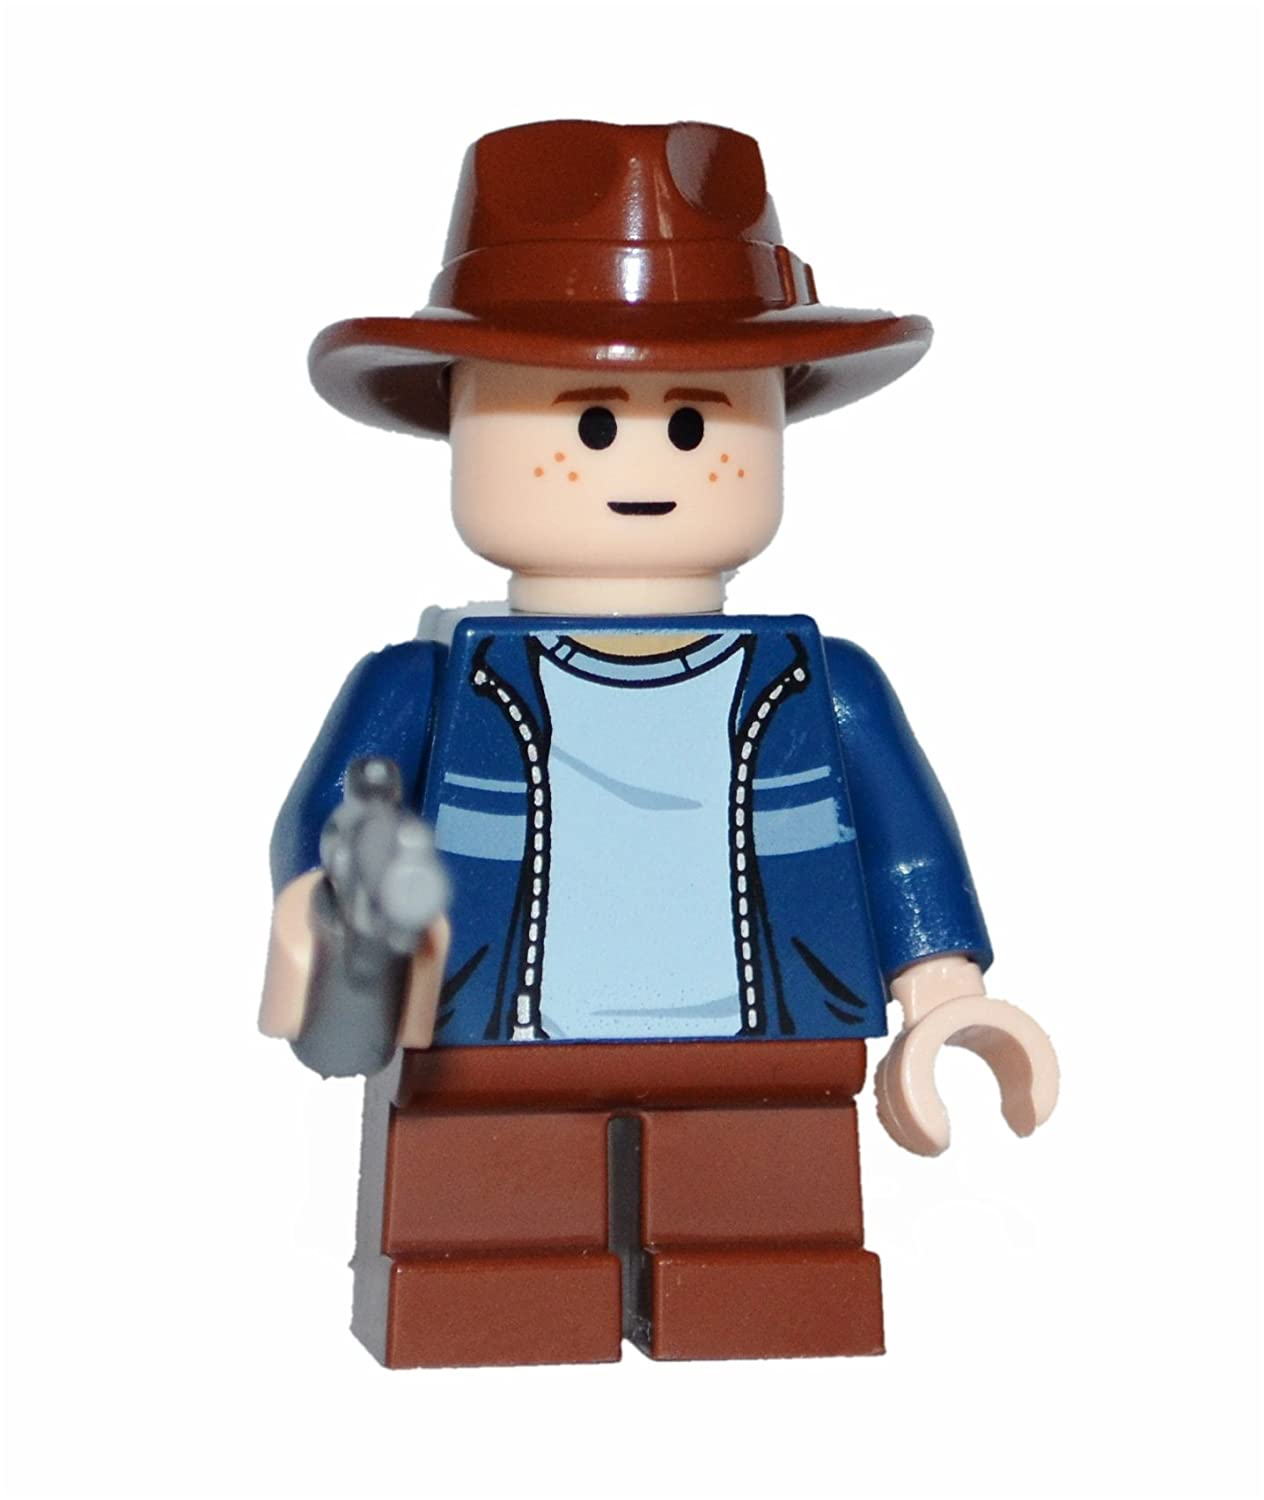 Walking dead lego daryl the walking - Amazon Com Lego Carl Grimes Figure Custom The Walking Dead Toys Games